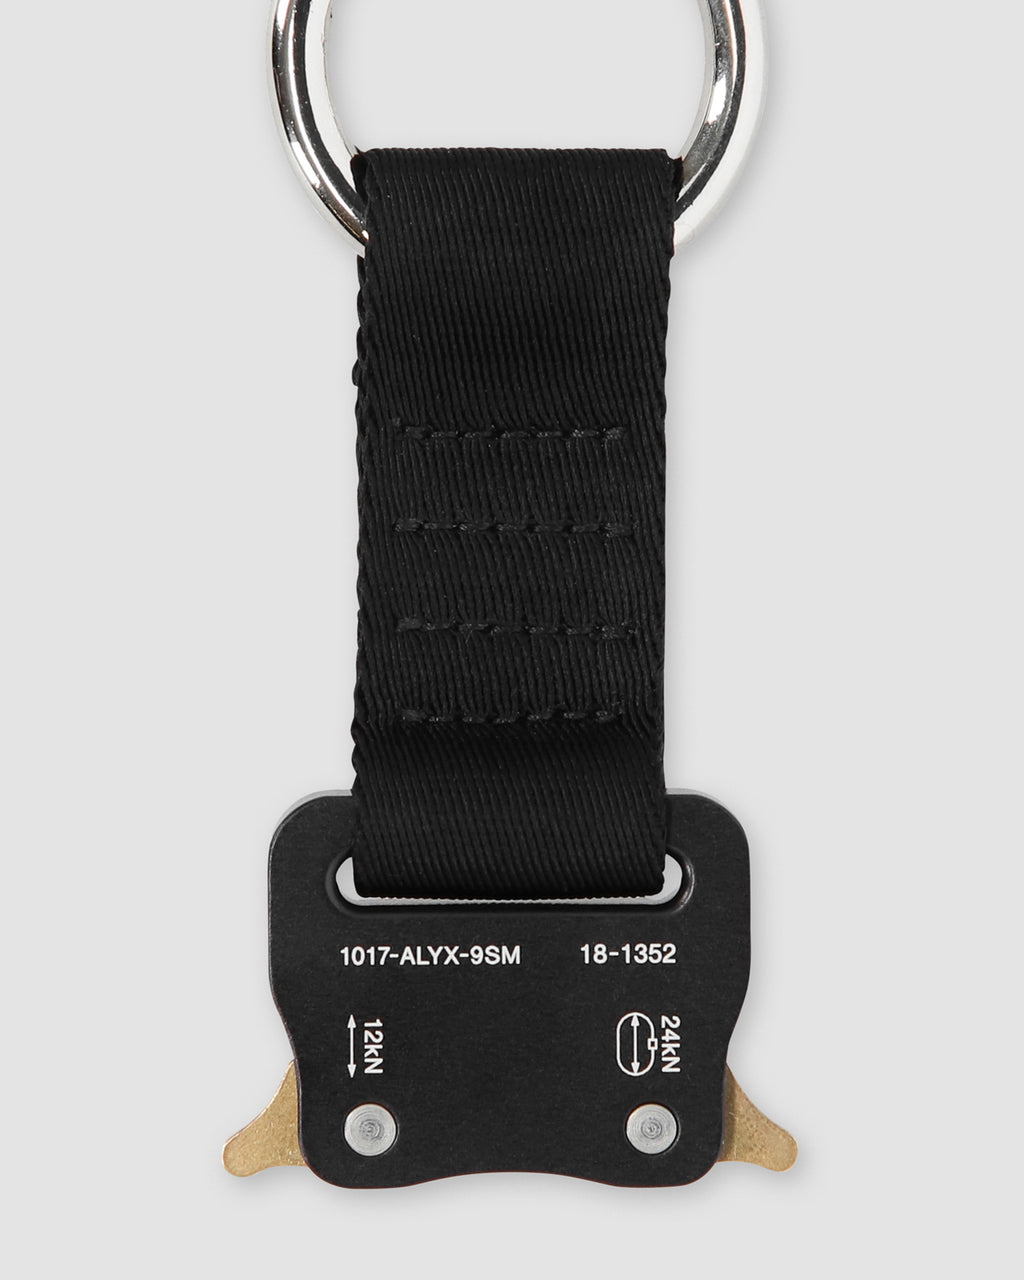 Buckle Down Unisexs Key Chain